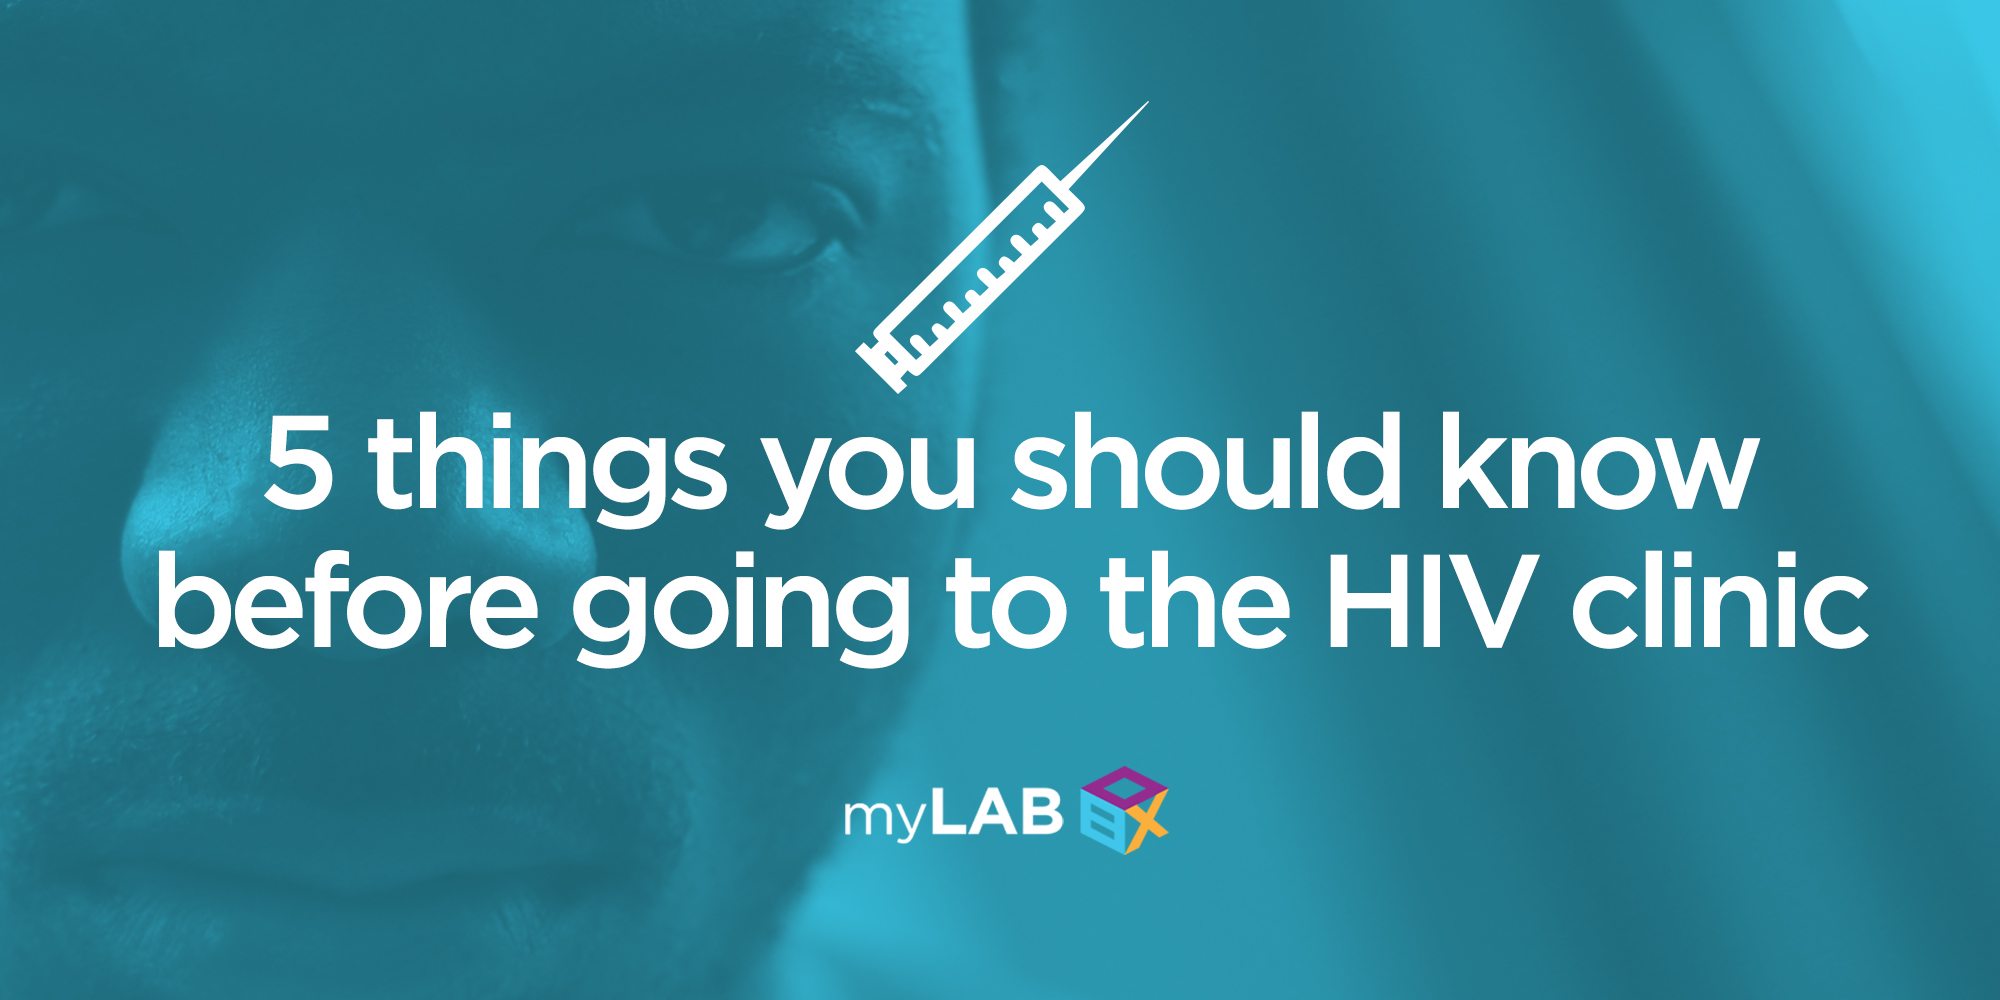 5 things you should know before going to the HIV clinic